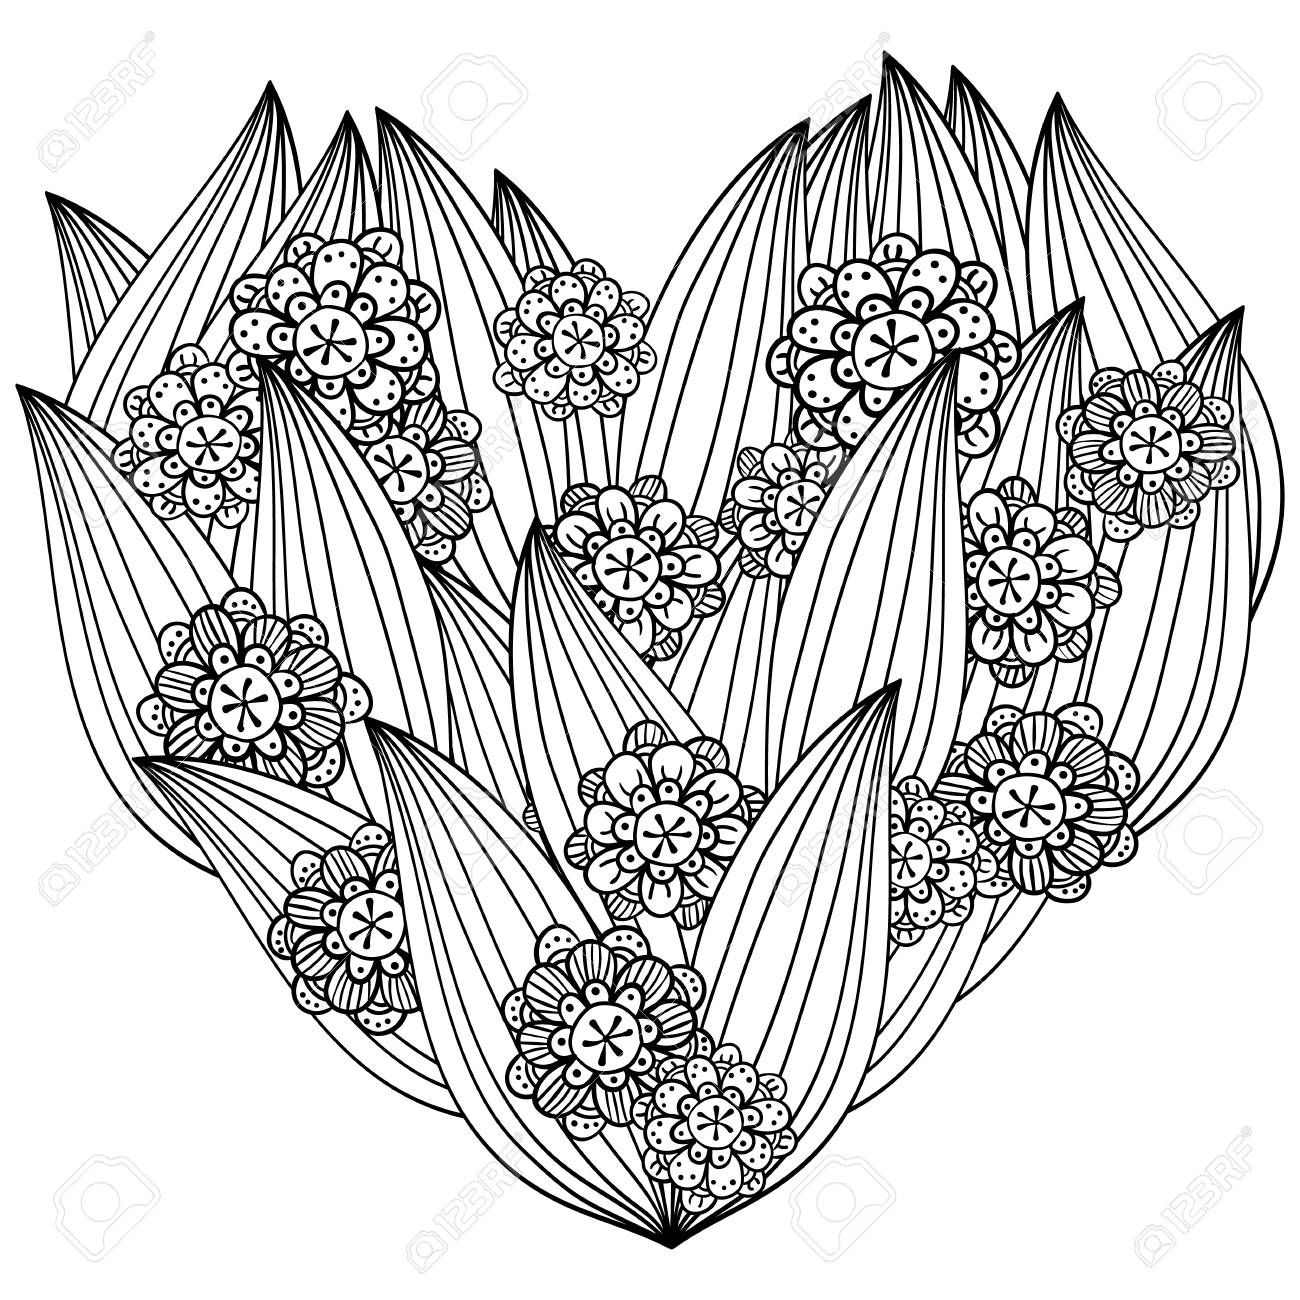 Heart Adult Coloring Book Page. Whimsical Line Art. Zentangle ...